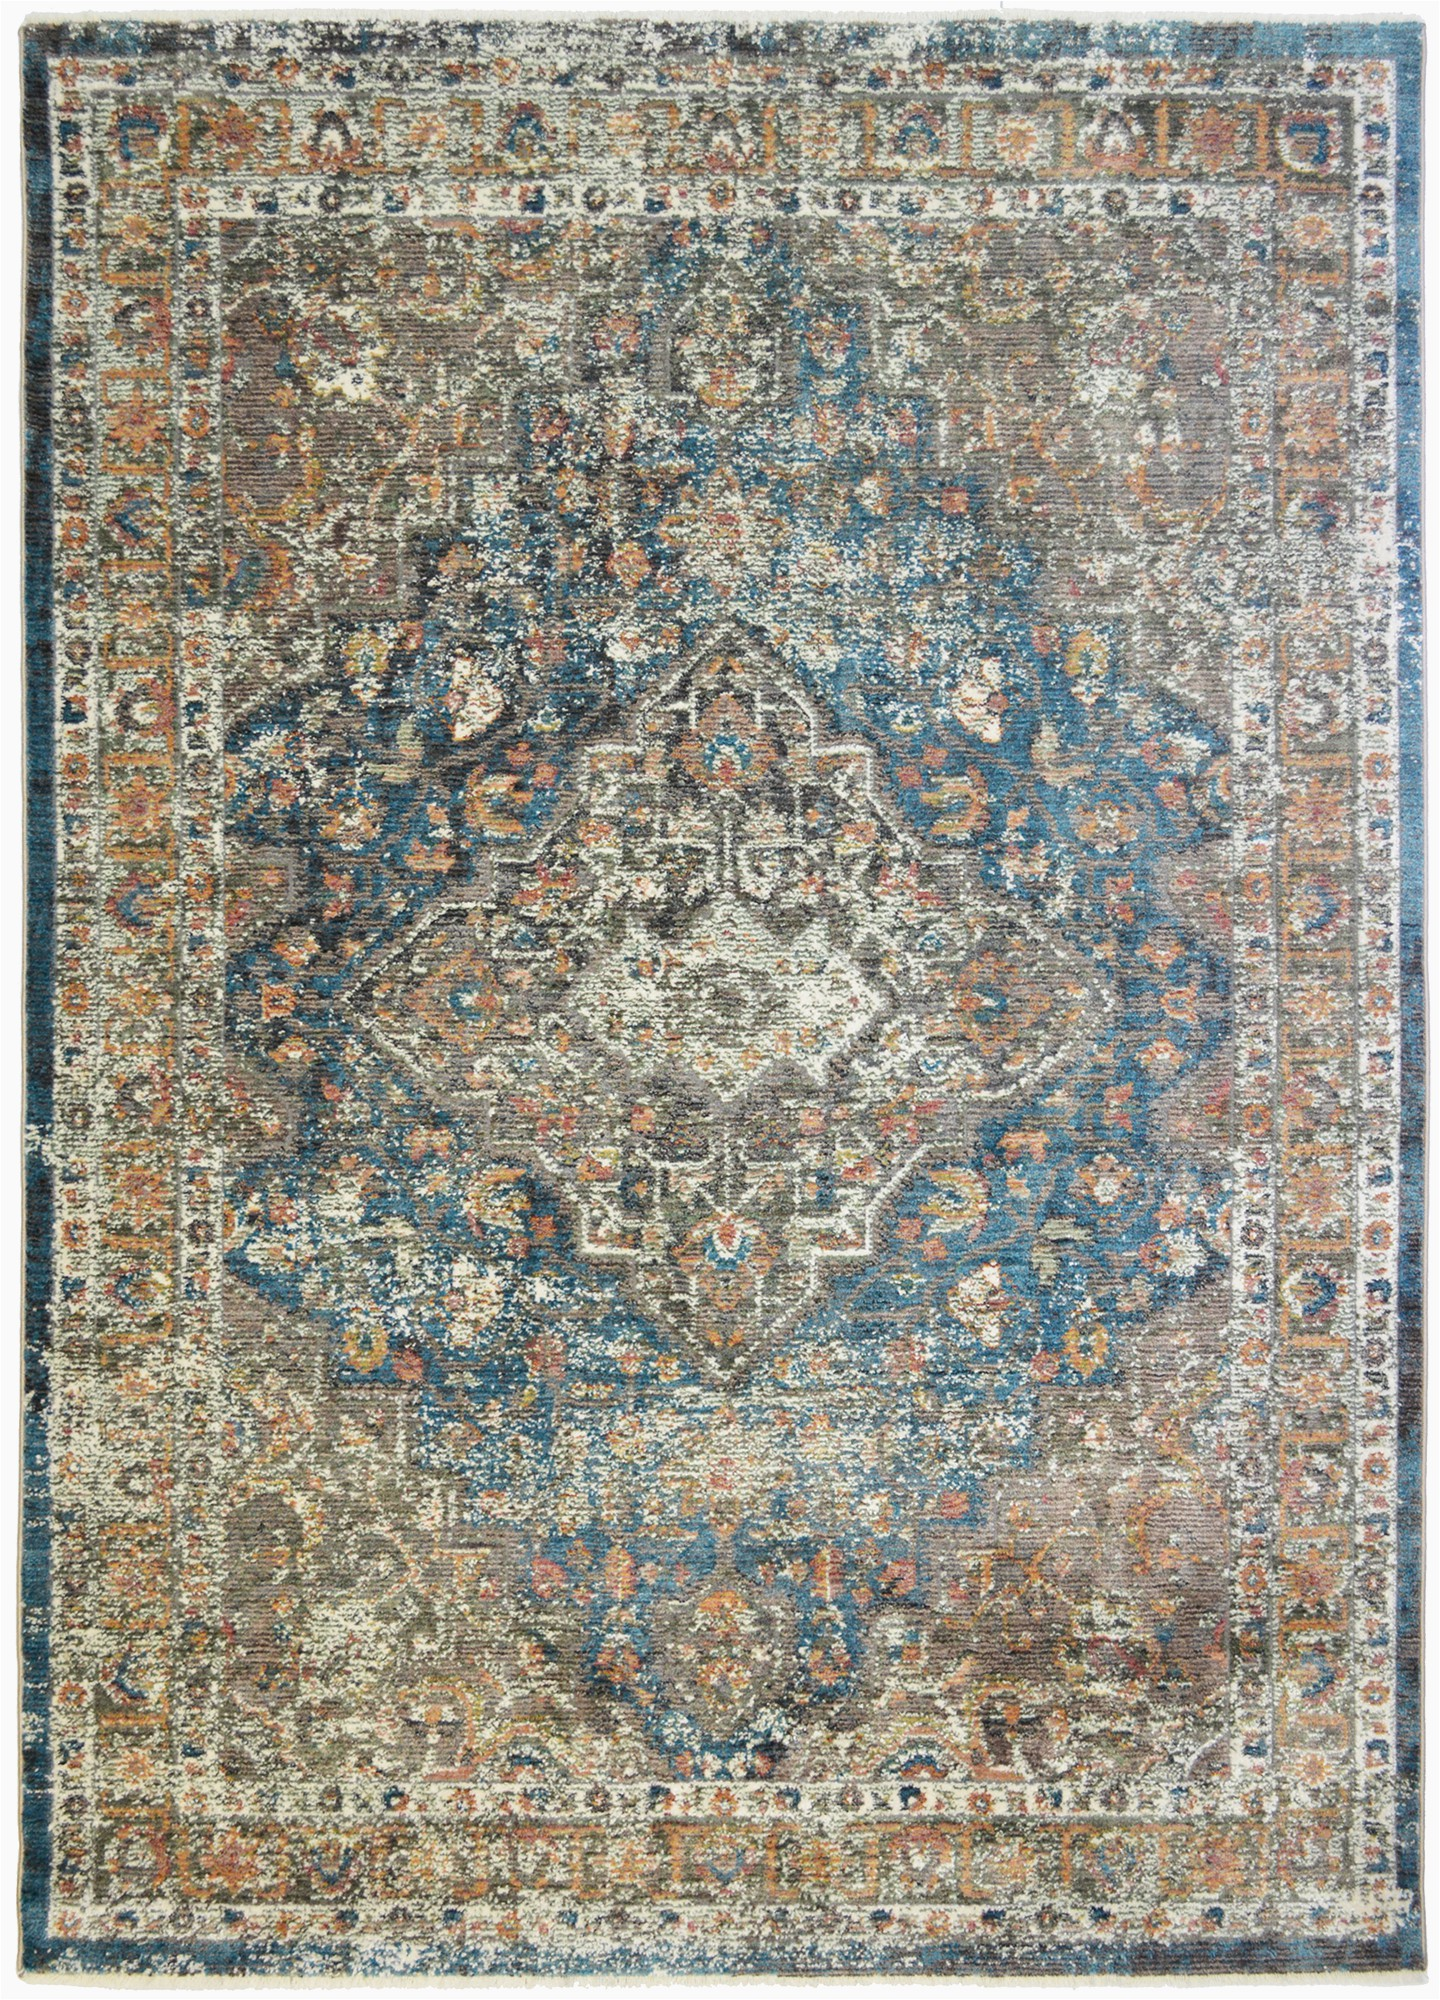 Brown and Blue area Rug Walmart Mayberry Oxford Castle Blue area Rug